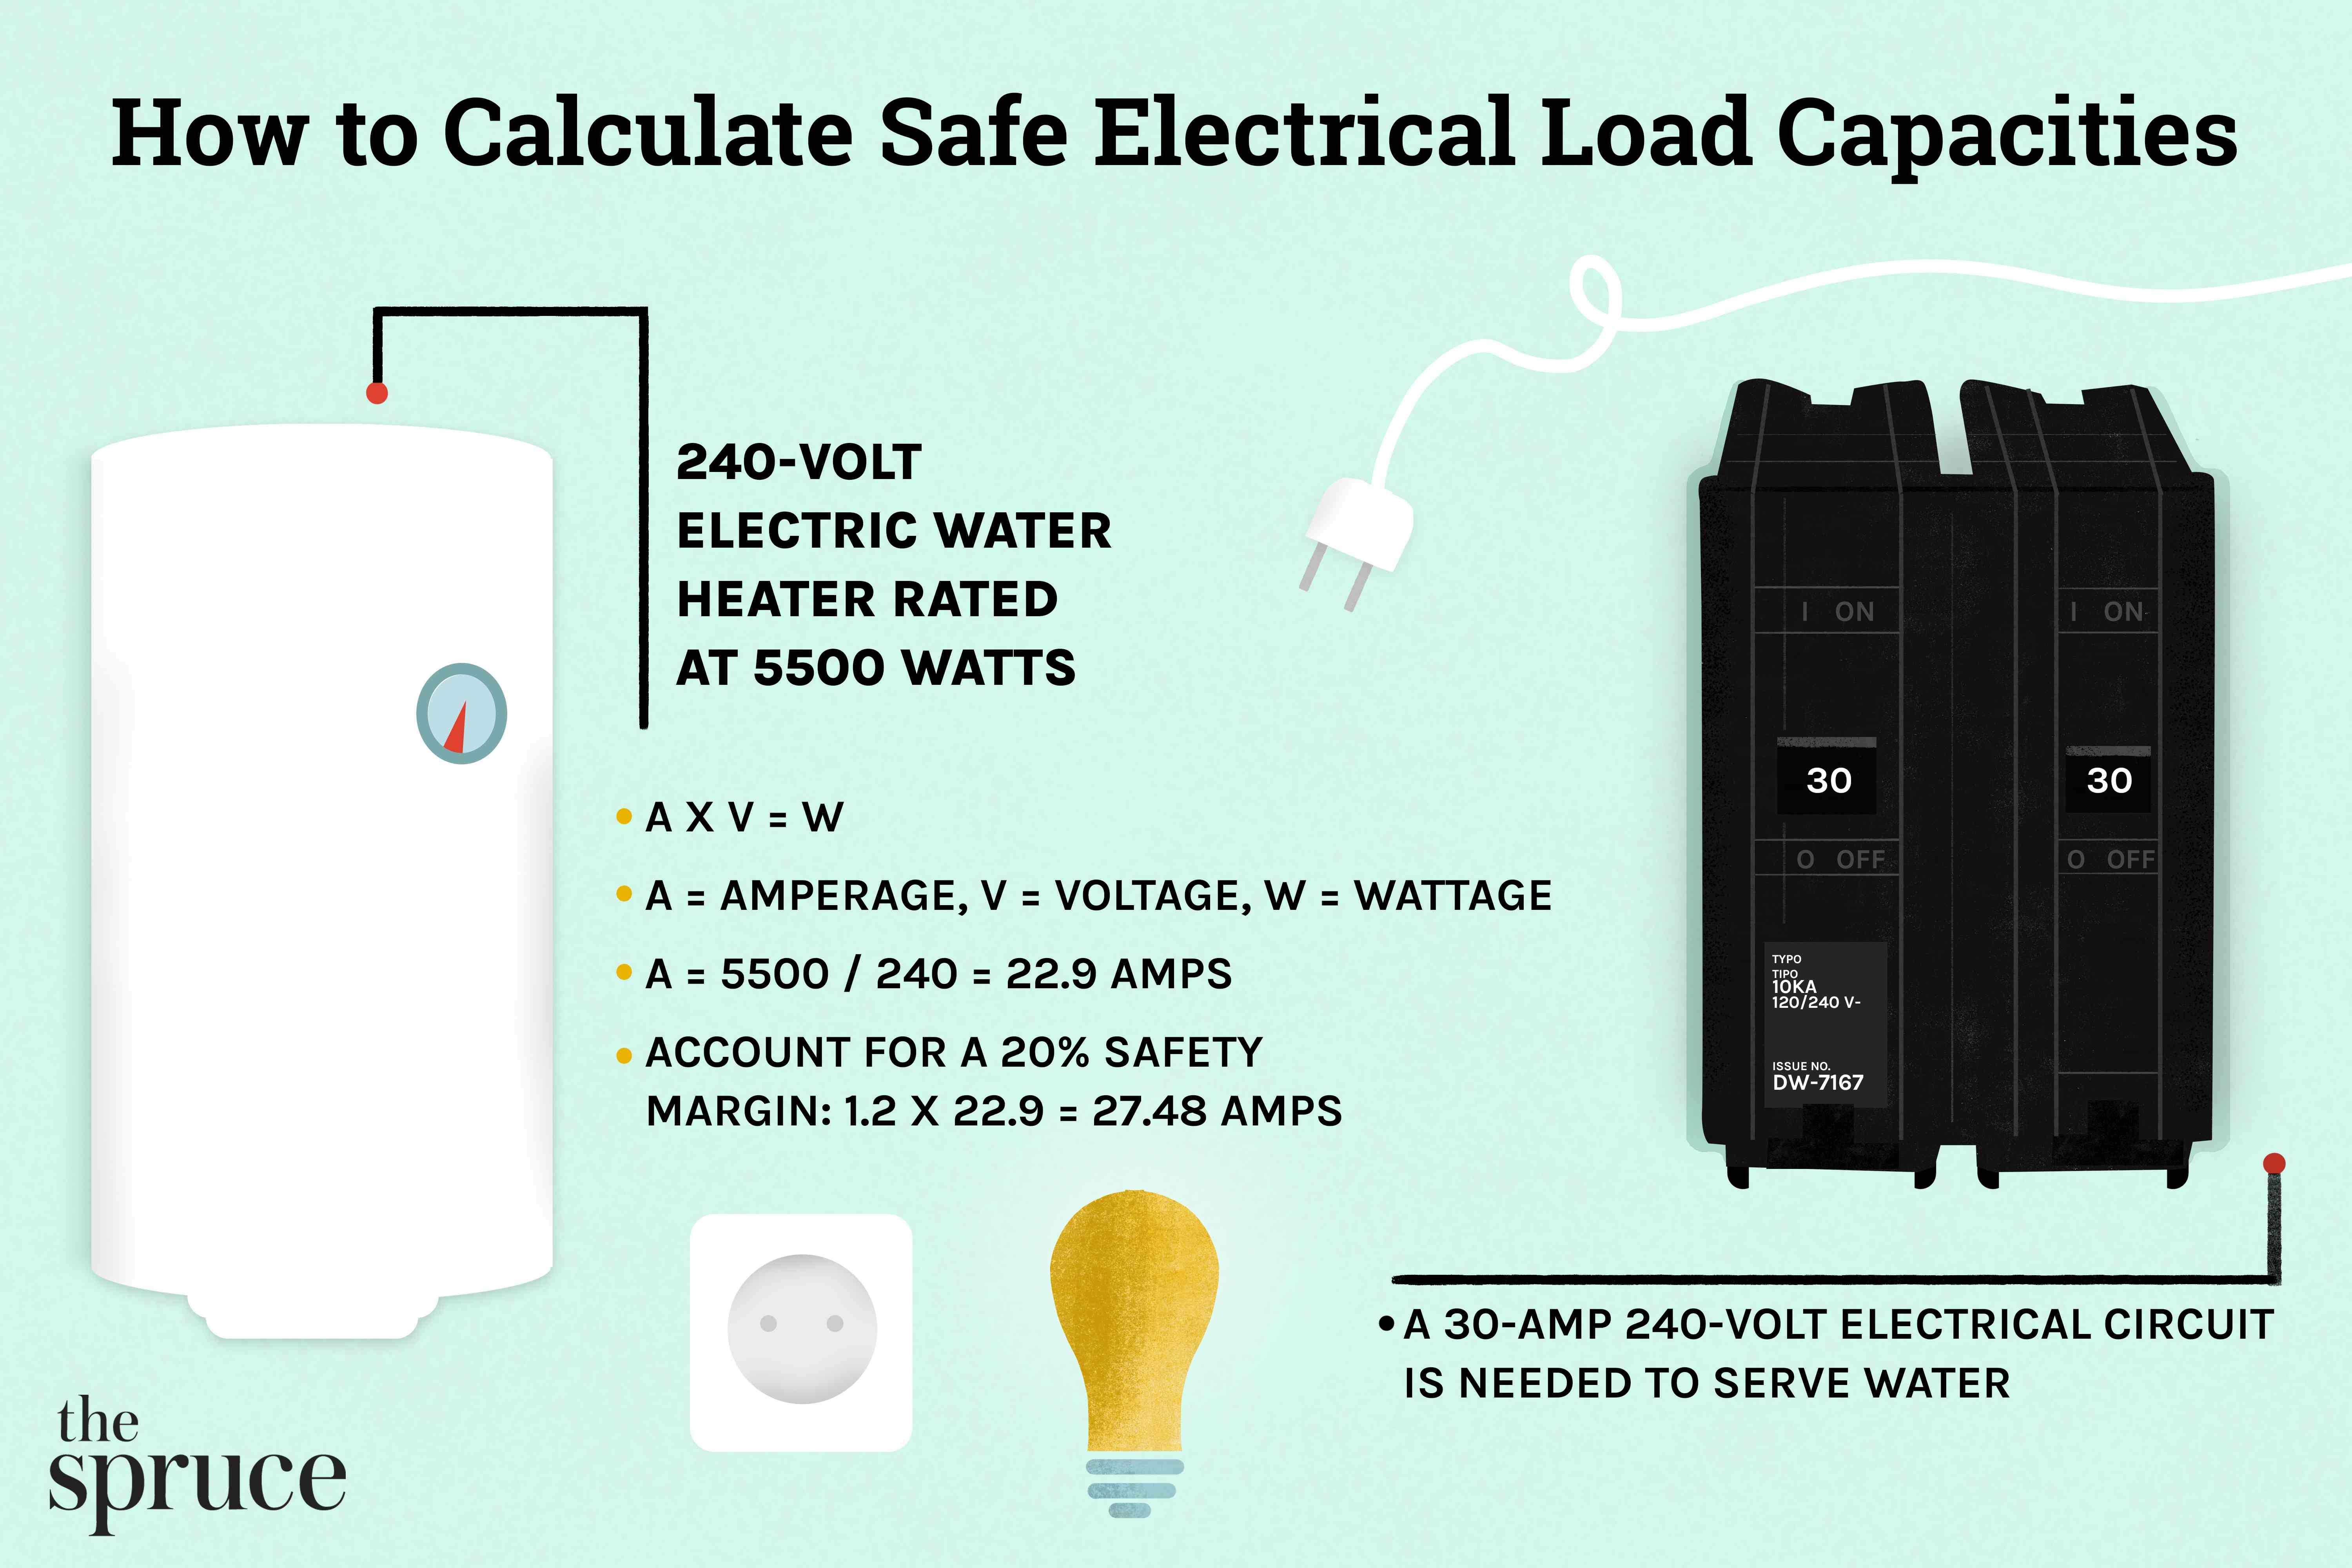 How to Calculate Safe Electrical Load Capacities